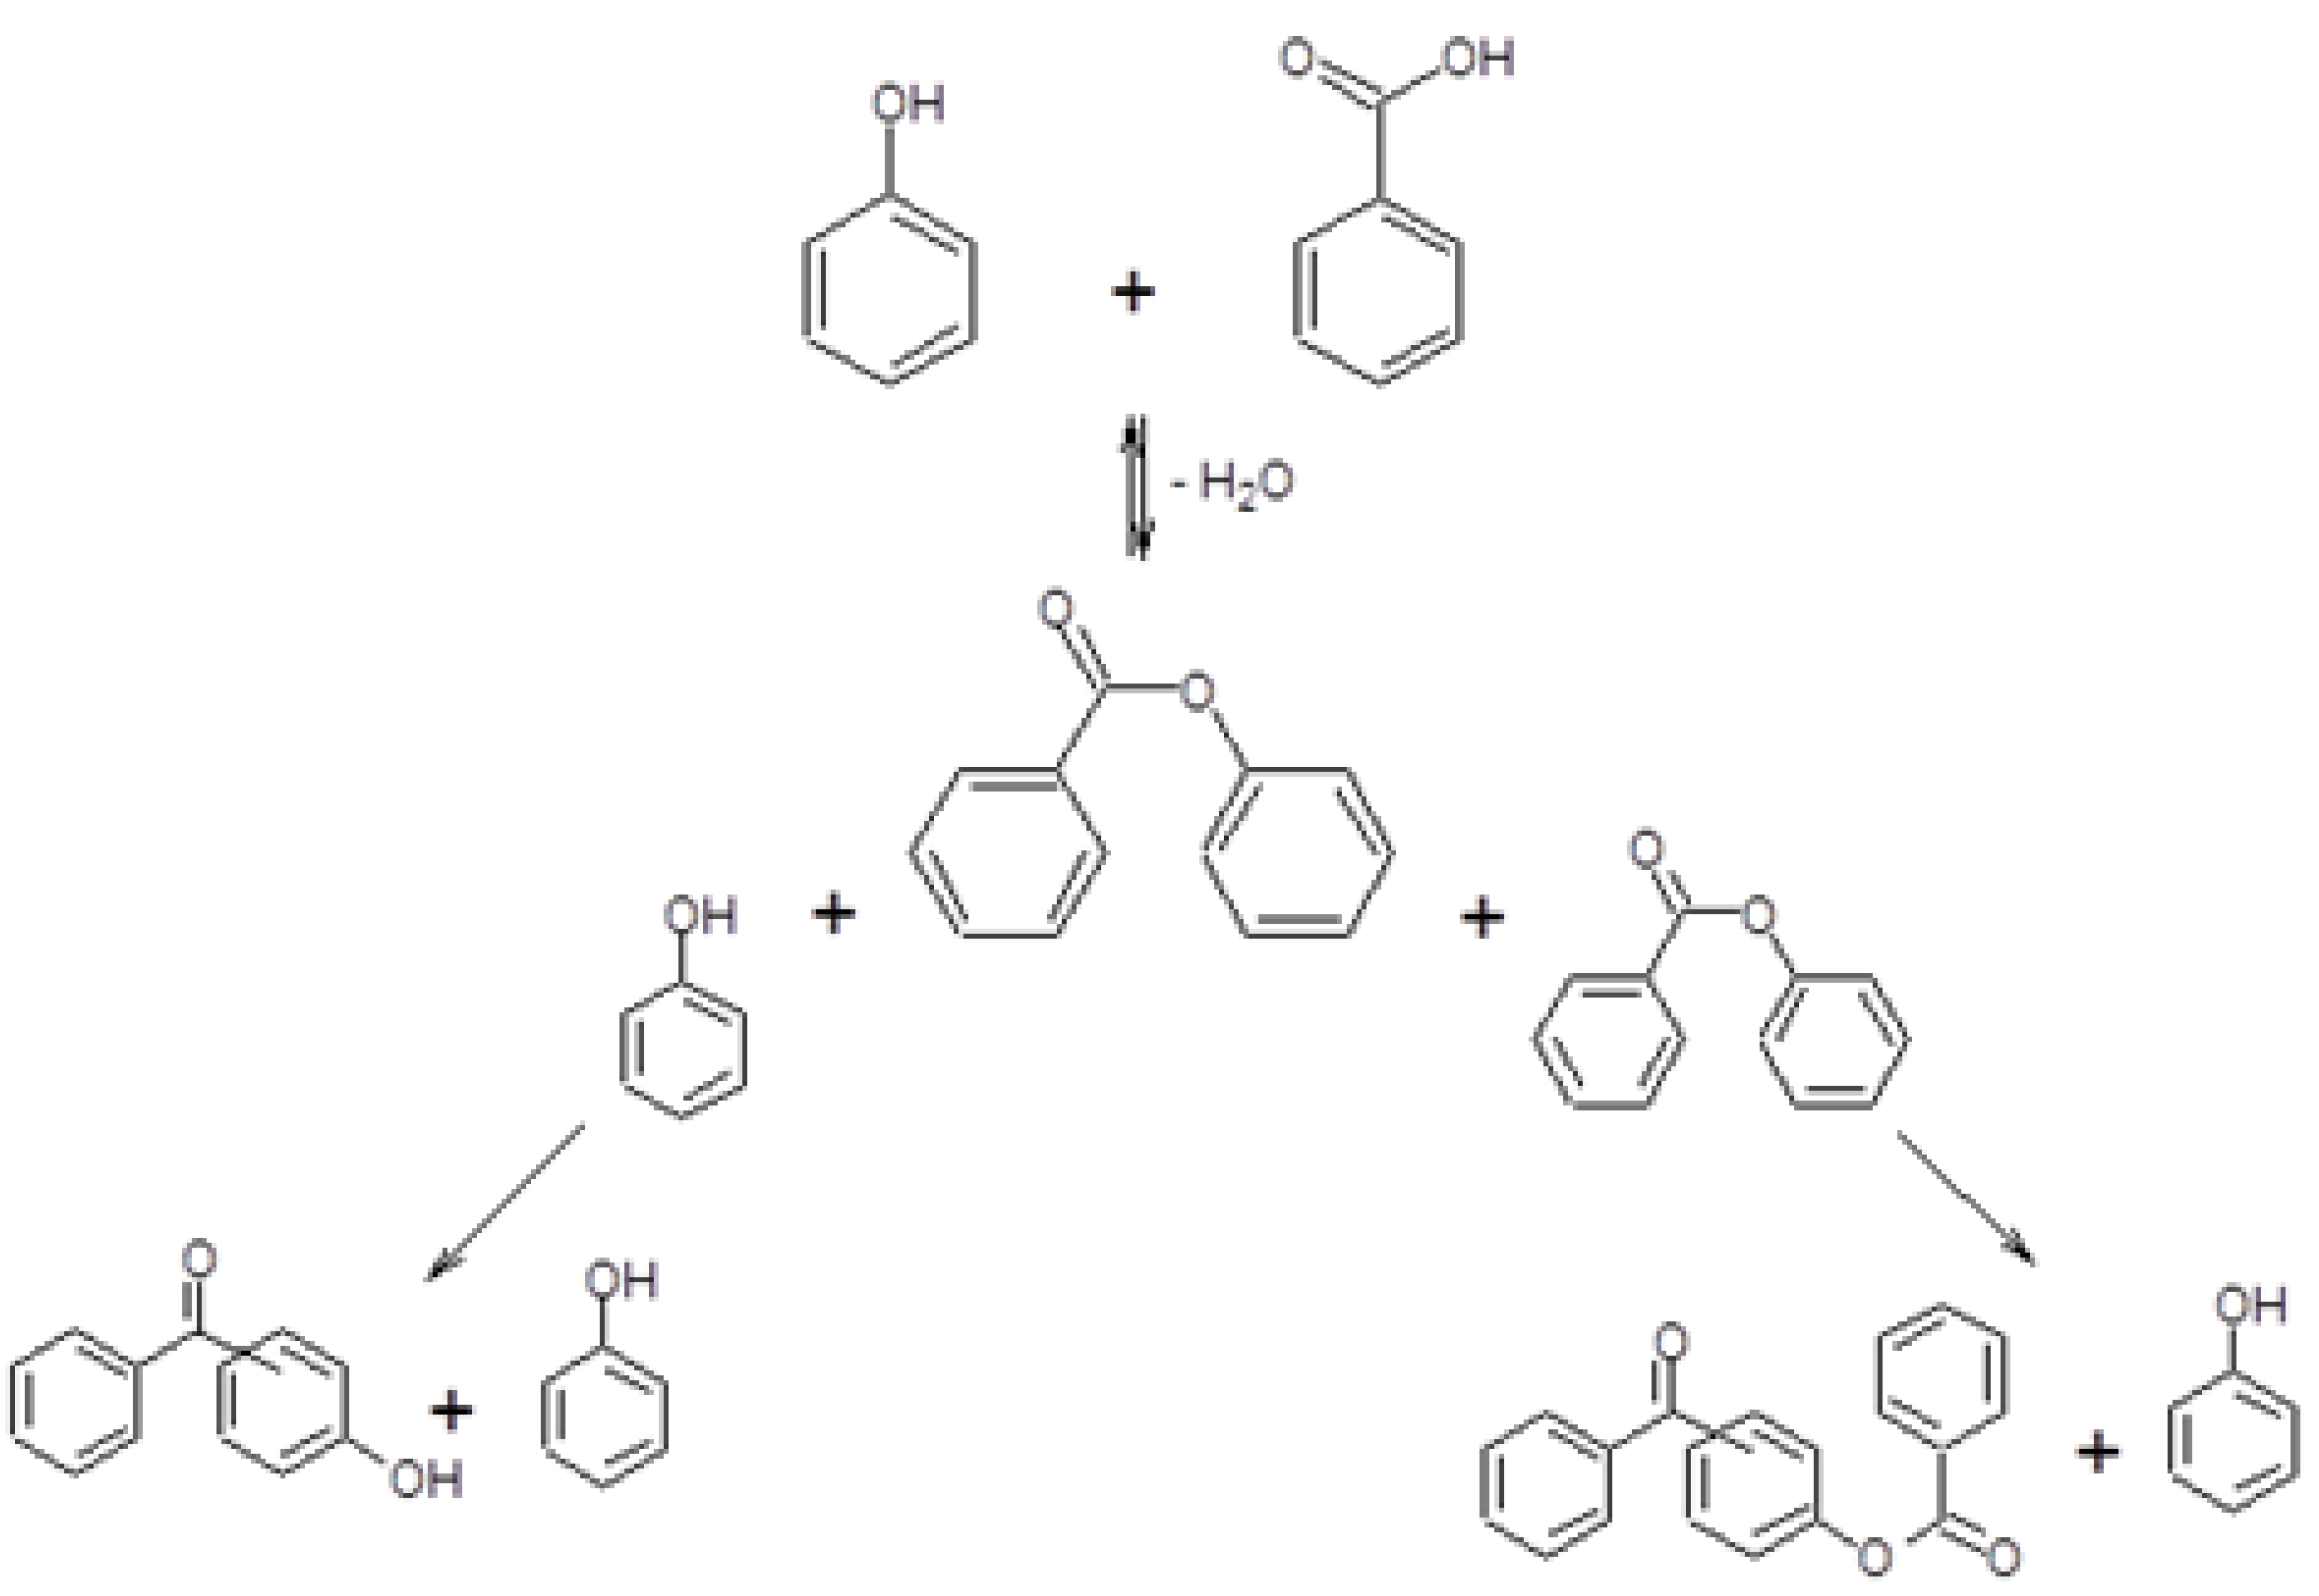 multistep synthesis of benzilic acid Elizabeth ping | february 28, 2012| 1 preparation of benzilic acid introduction: the purpose of this experiment was to prepare benzilic acid by the rearrangement of the alpha- diketone benzil as well as to determine the melting point and ir of benzilic acid benzil to benzilic acid mechanism of the rearrangement of benzil to make benzilic acid.